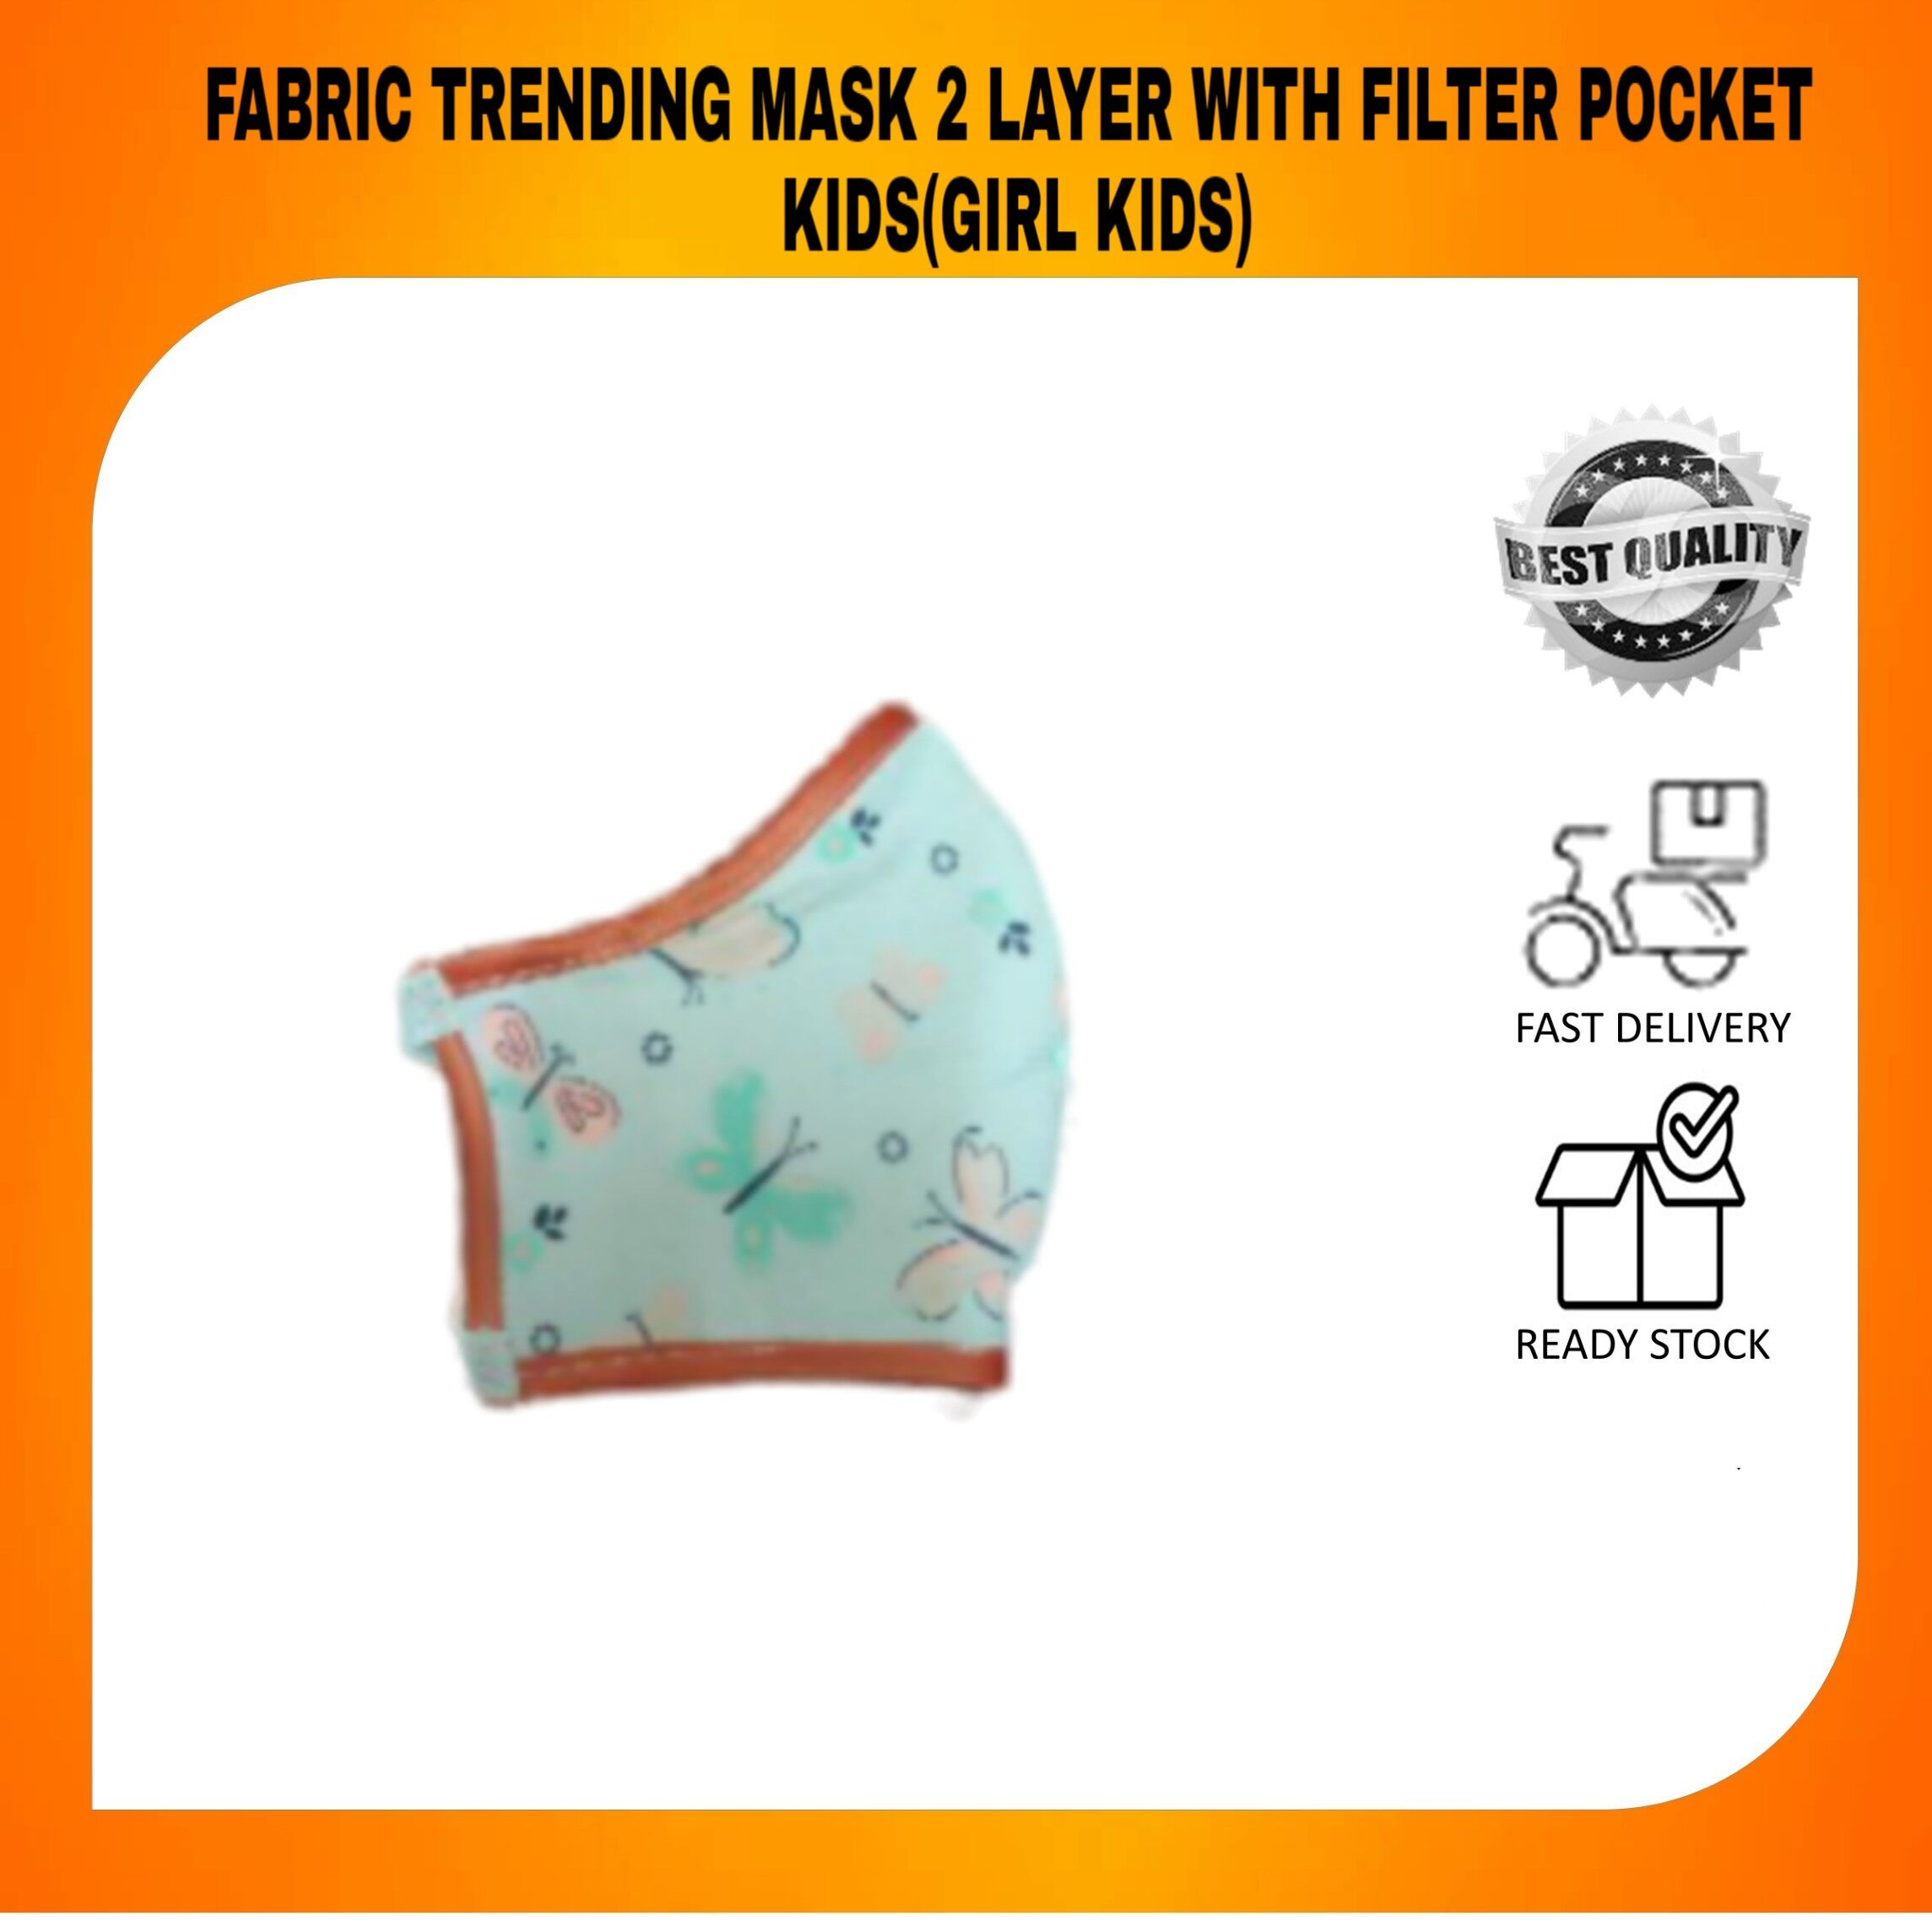 HOT FABRIC TRENDING MASK 2 LAYER WITH FILTER POCKET FOR KIDS Girls